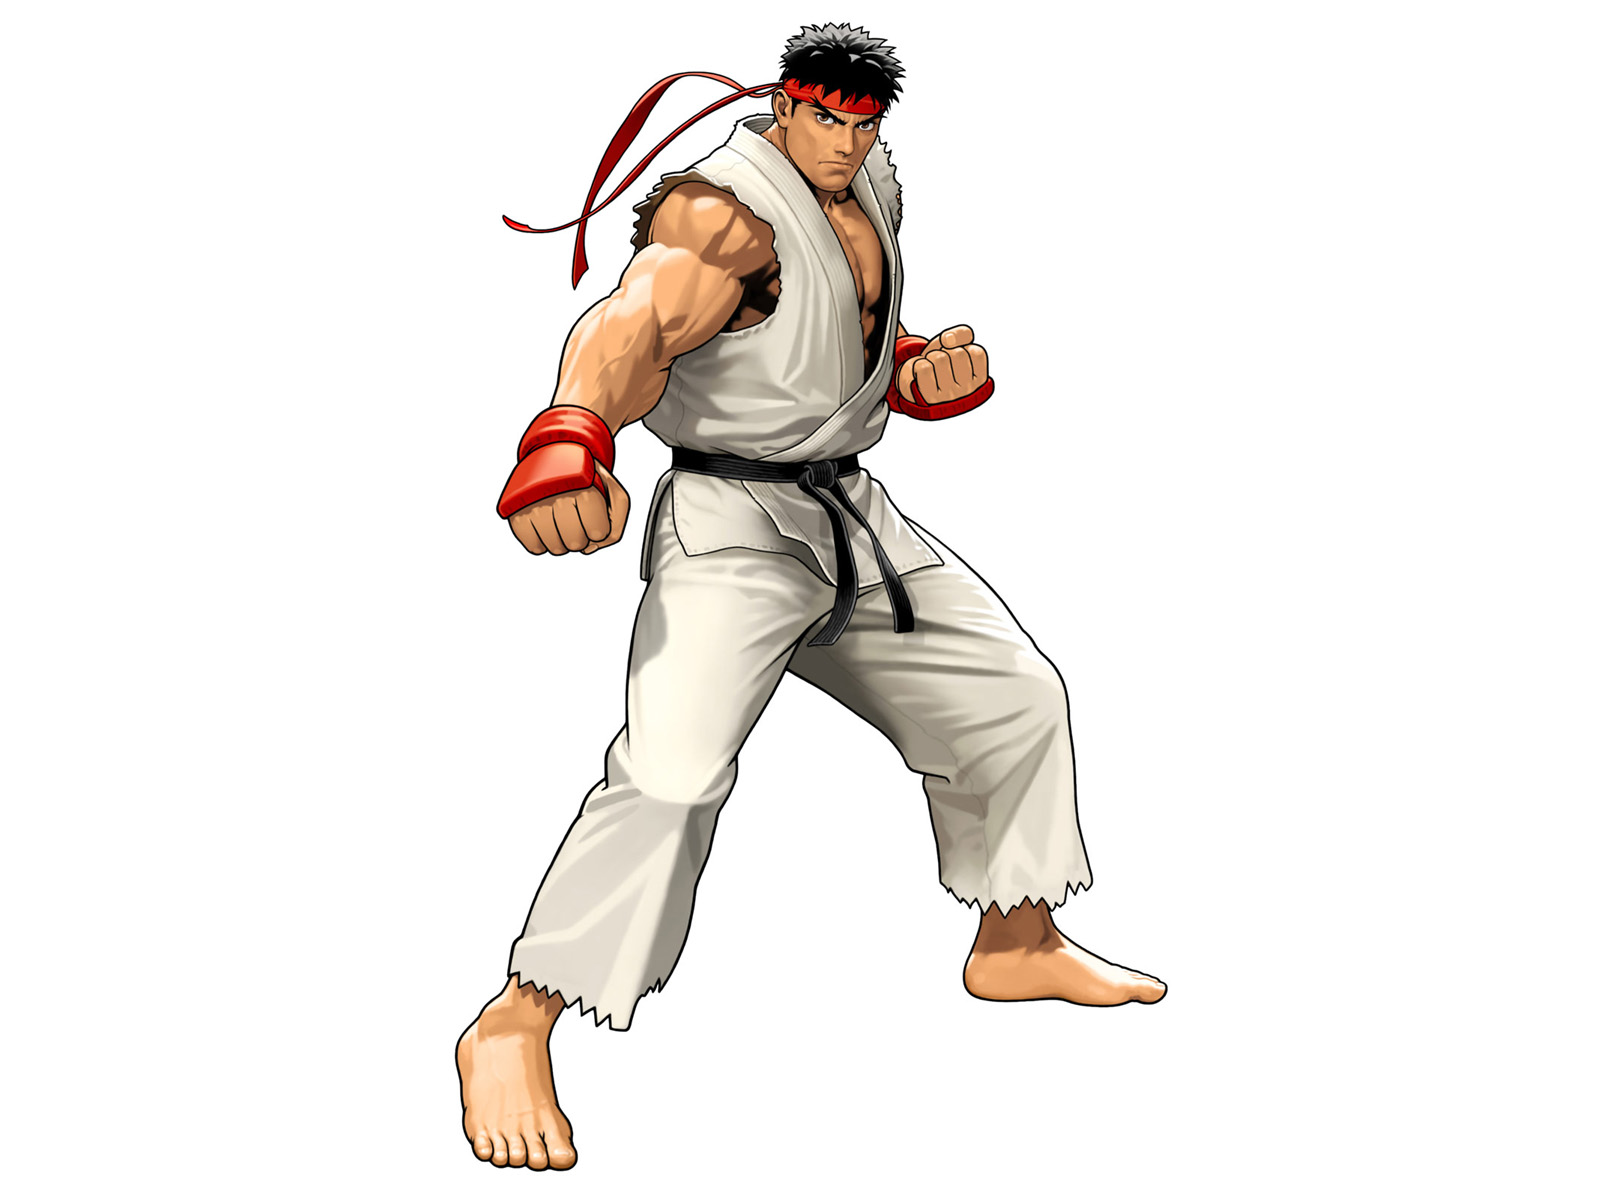 WallpapersWide  Street Fighter HD Wallpapers  Backgrounds  Wallpaper  1600x1200